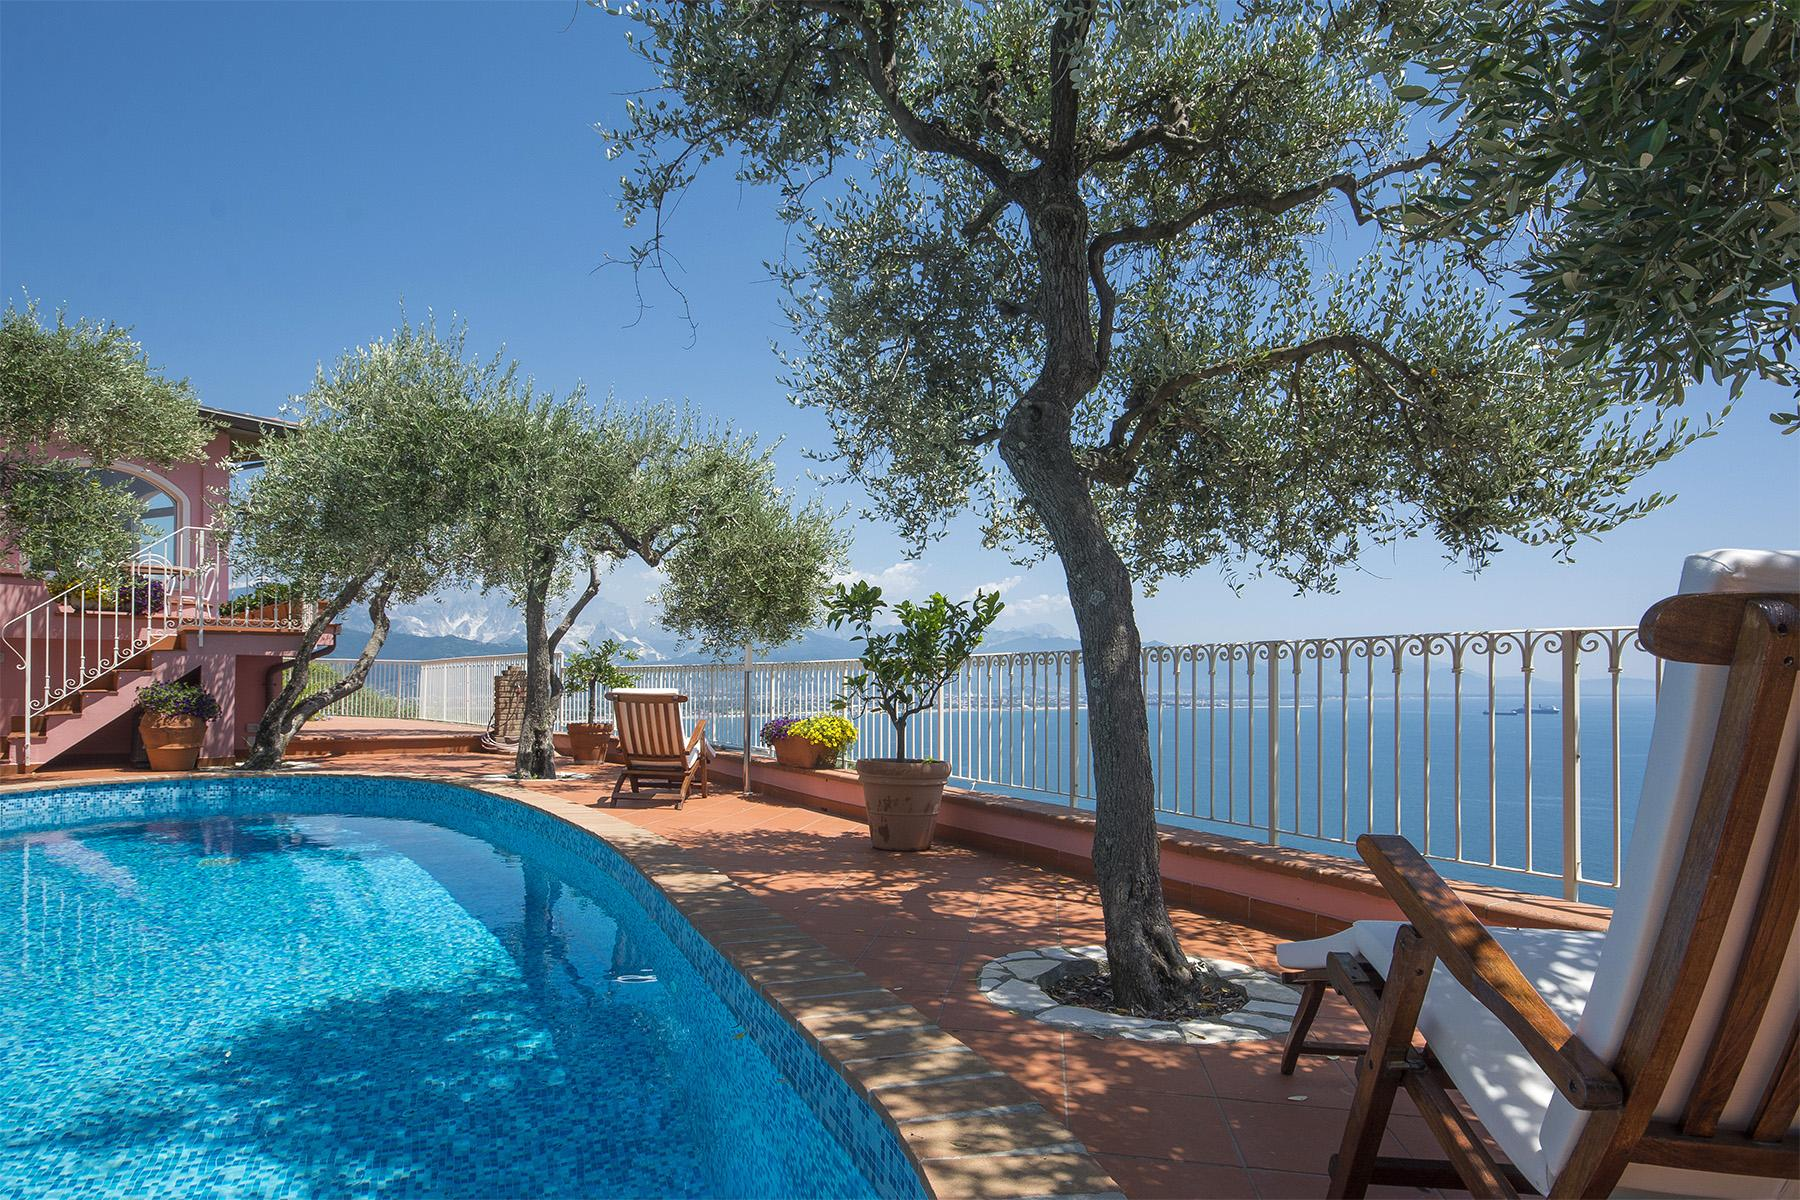 Charming luxury villa with swimming pool overlooking the Ligurian sea - 4